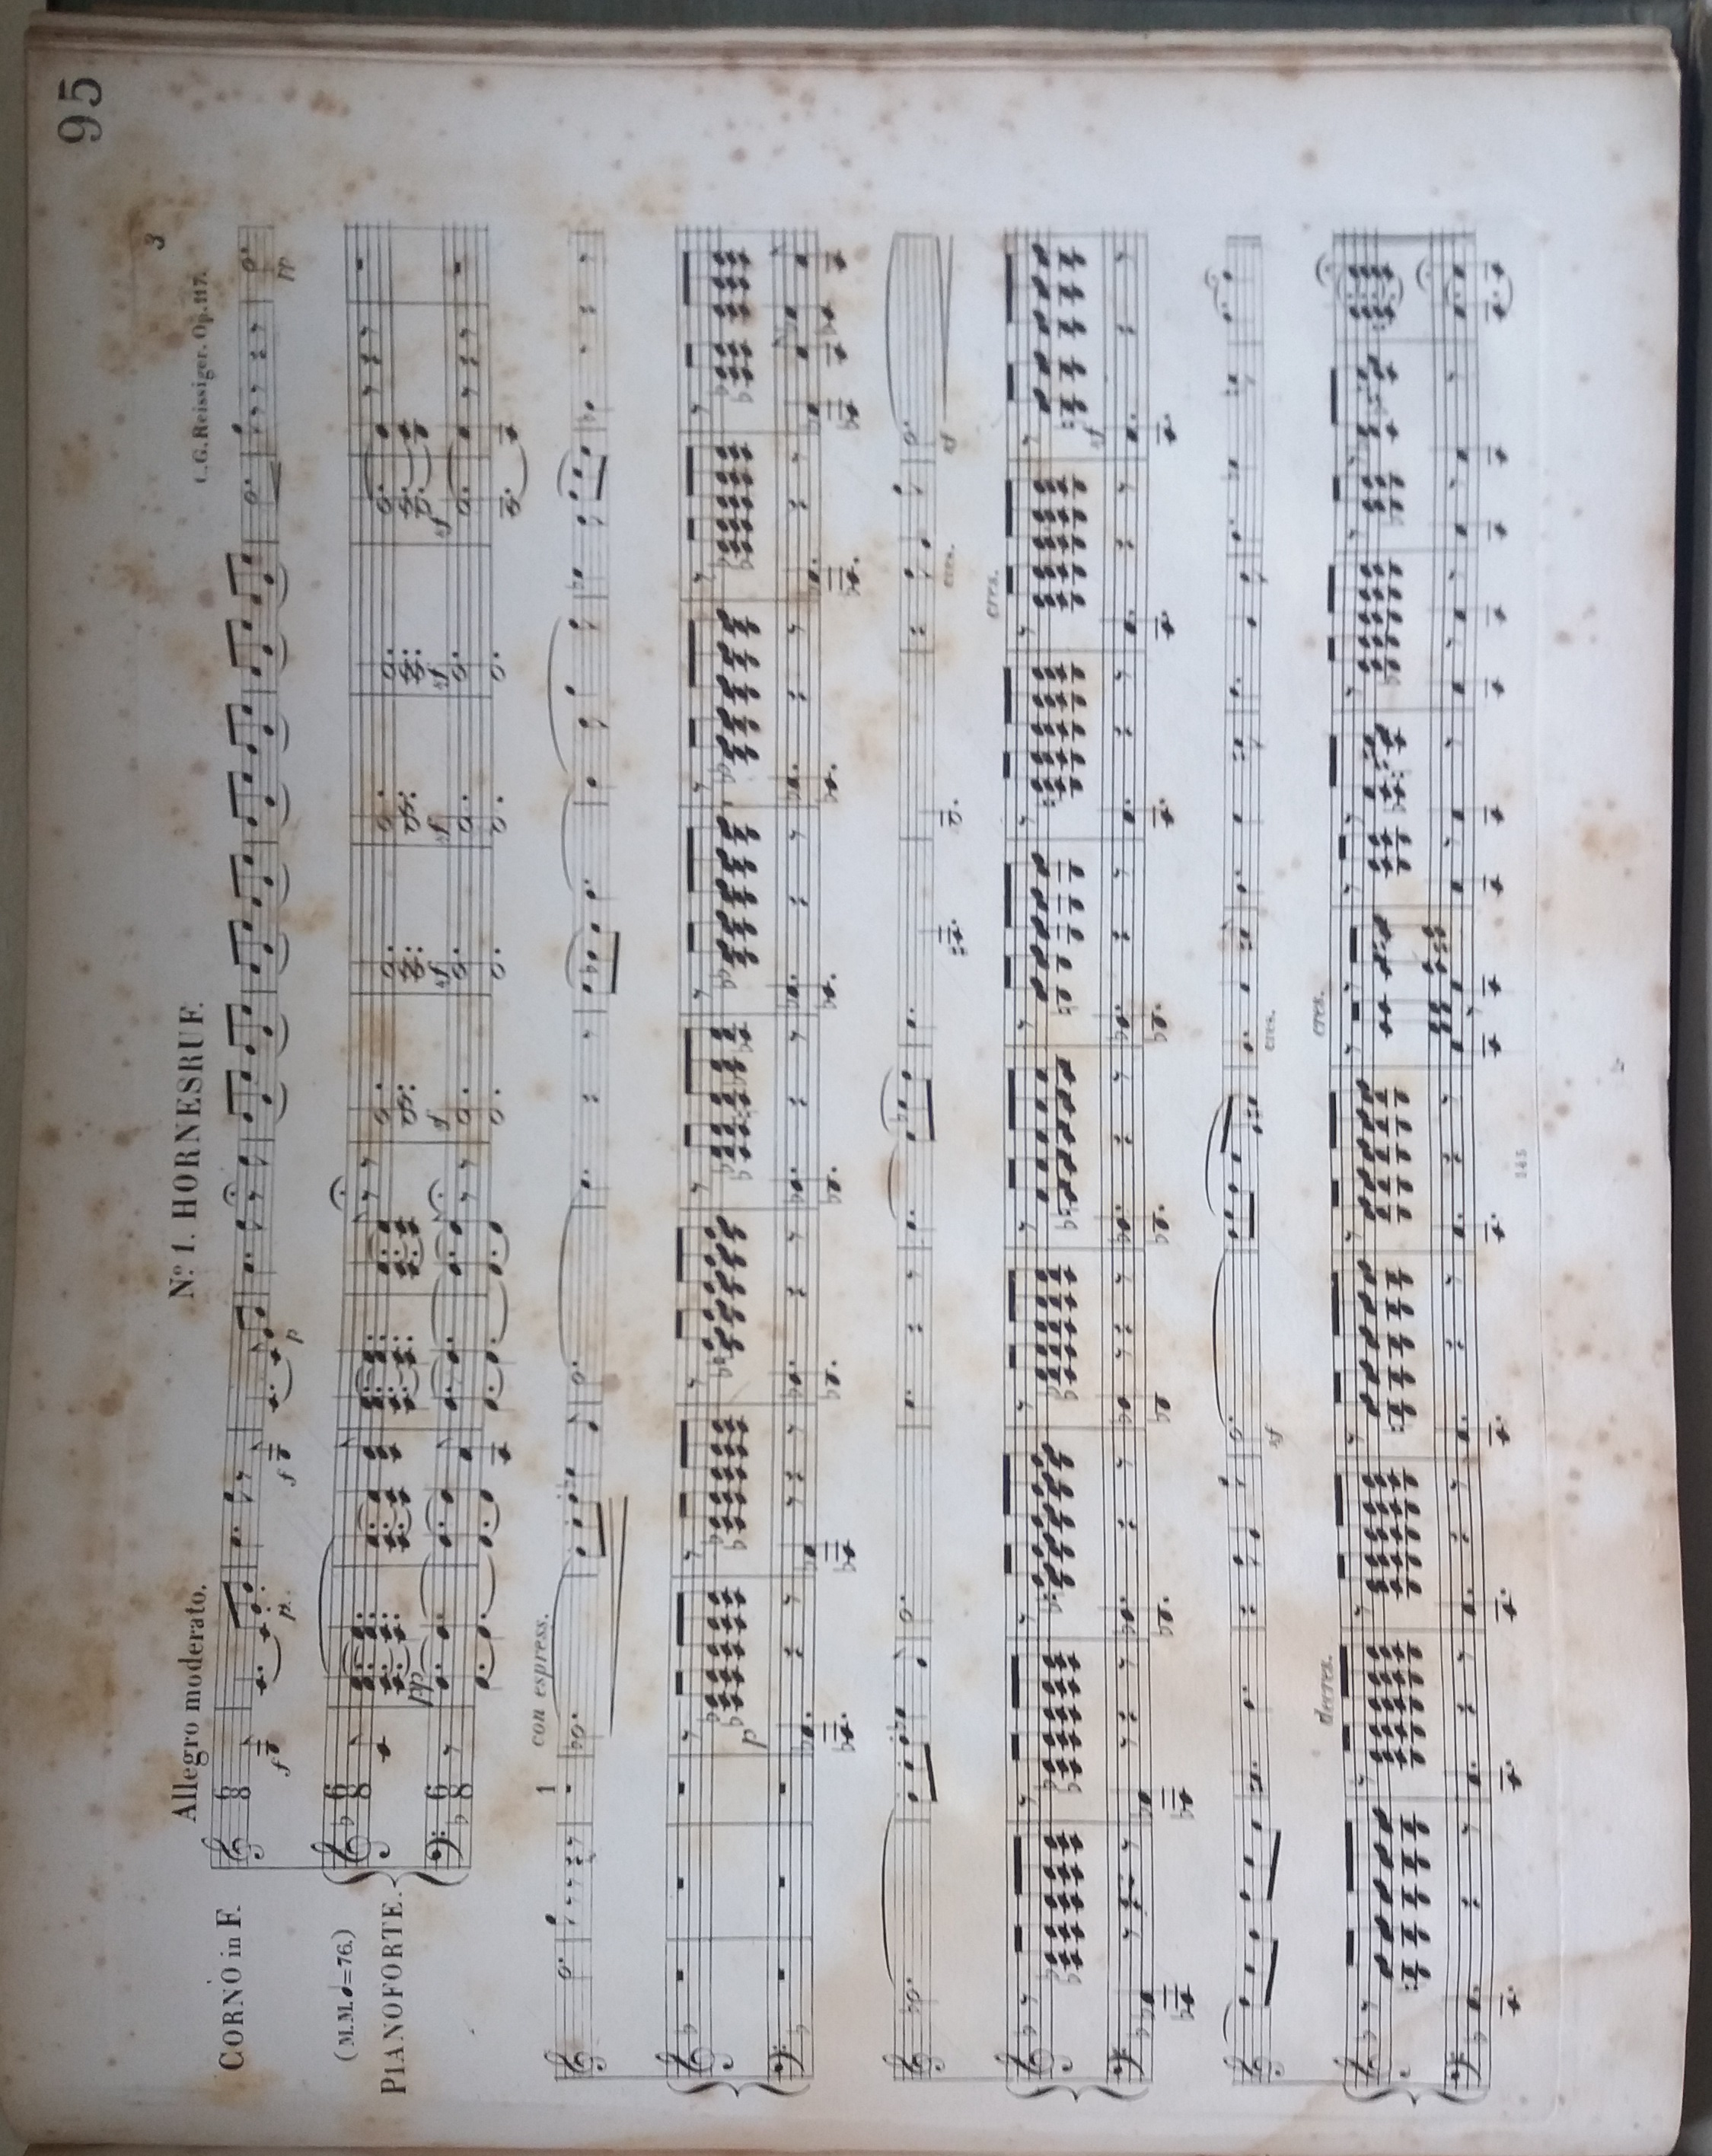 Manuscripts jerwood library of the performing arts carl reissigers vier gesnge for soprano horn and piano 7803 rei hexwebz Images